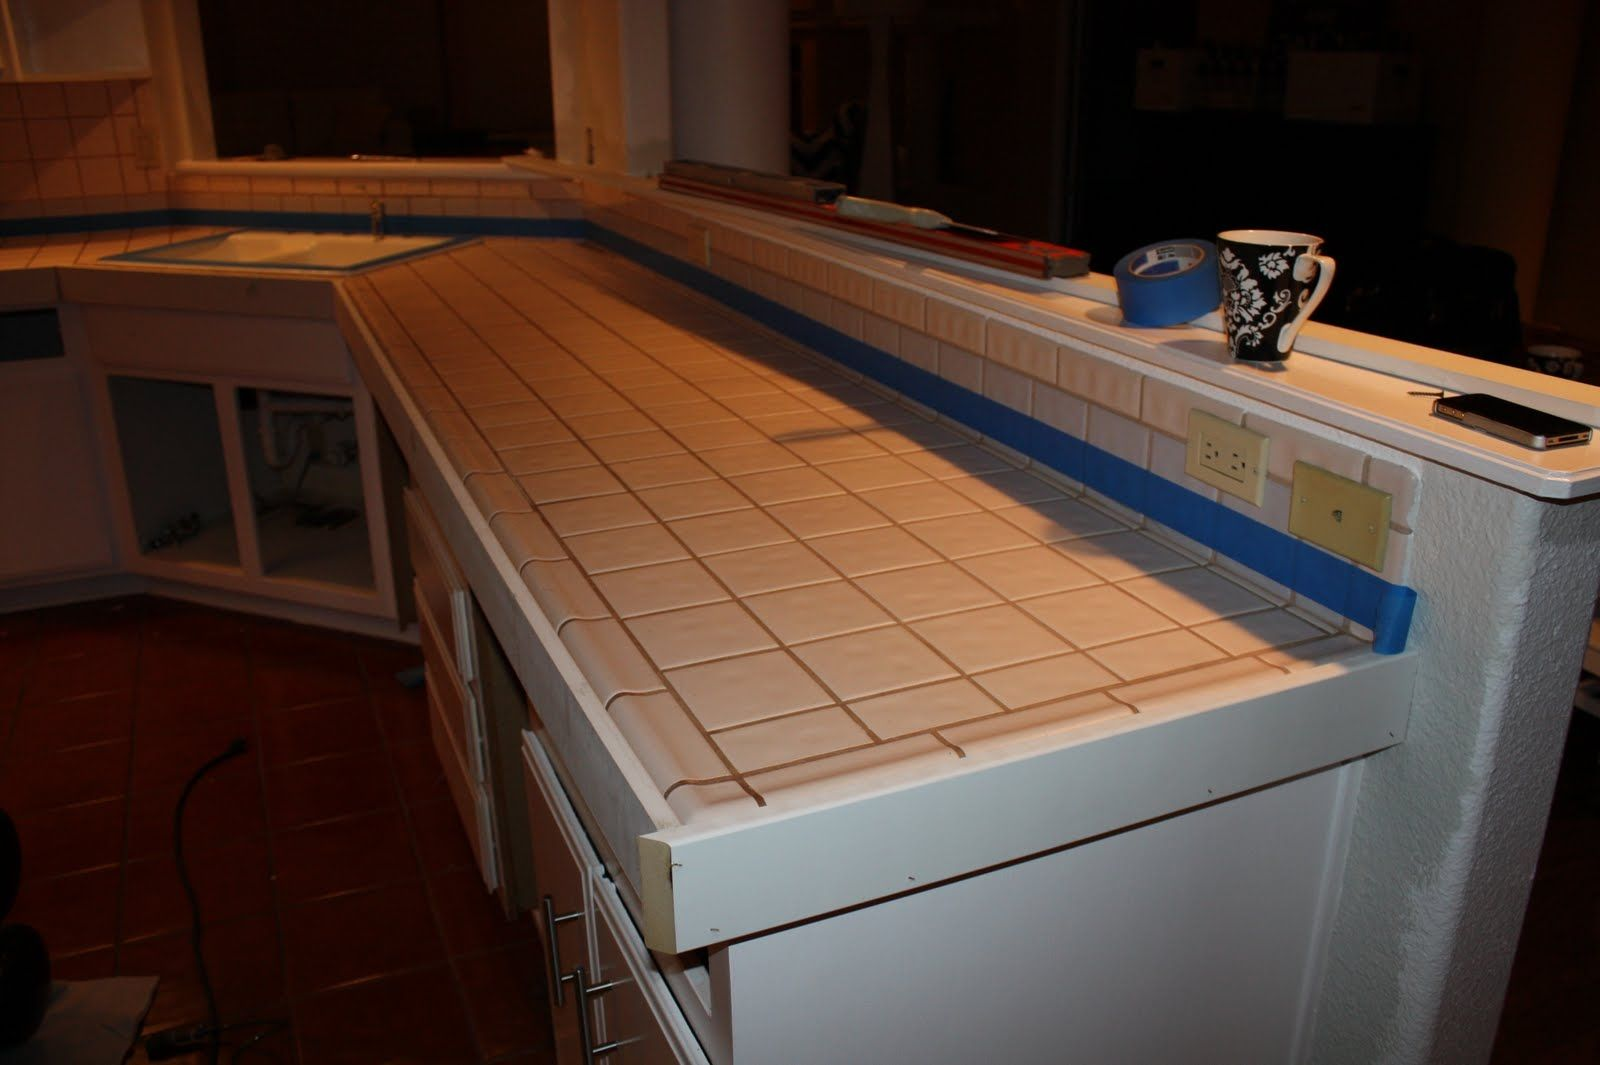 Cover kitchen countertops with concrete with images